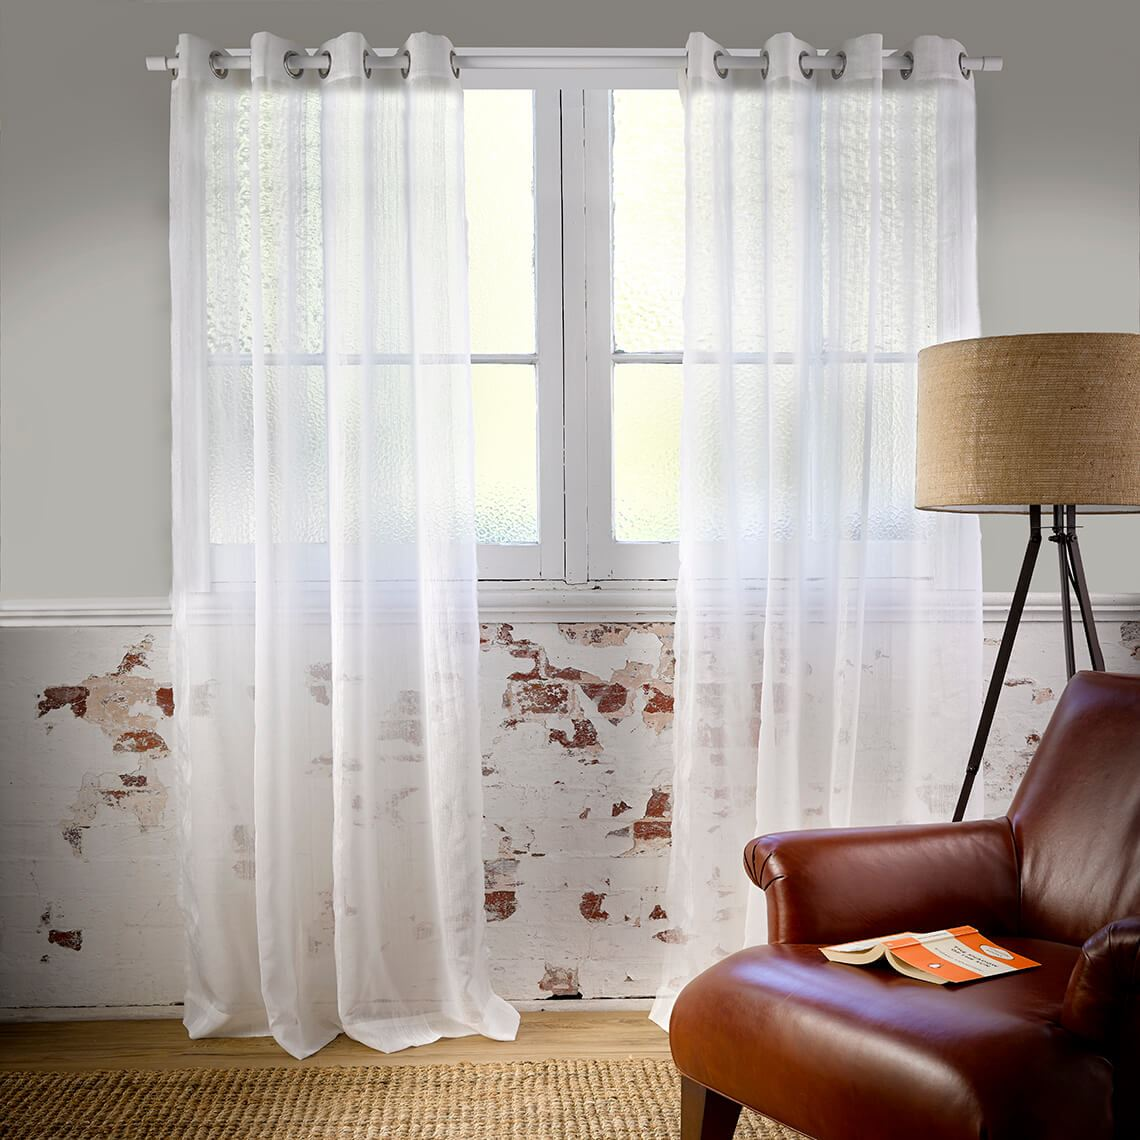 Houston Eyelet Curtain Size W 140cm x D 1cm x H 230cm in White 100% Polyester/Stainless Steel Freedom by Freedom, a Curtains for sale on Style Sourcebook